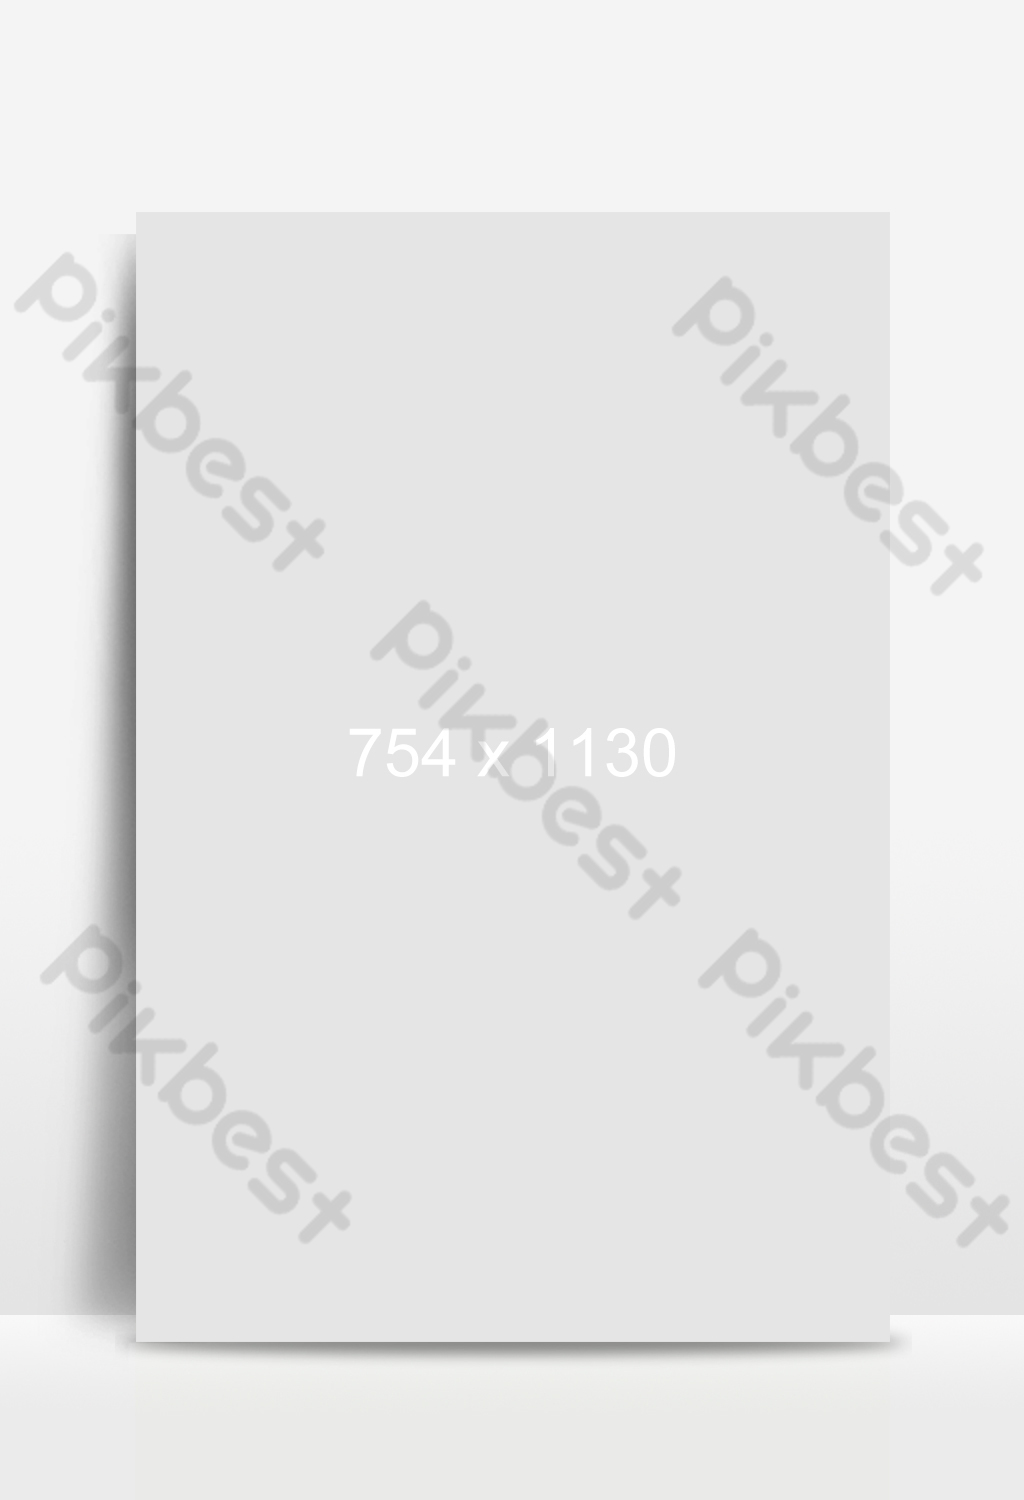 Fantasy Poker Gift Party Party Background Backgrounds Psd Free Download Pikbest